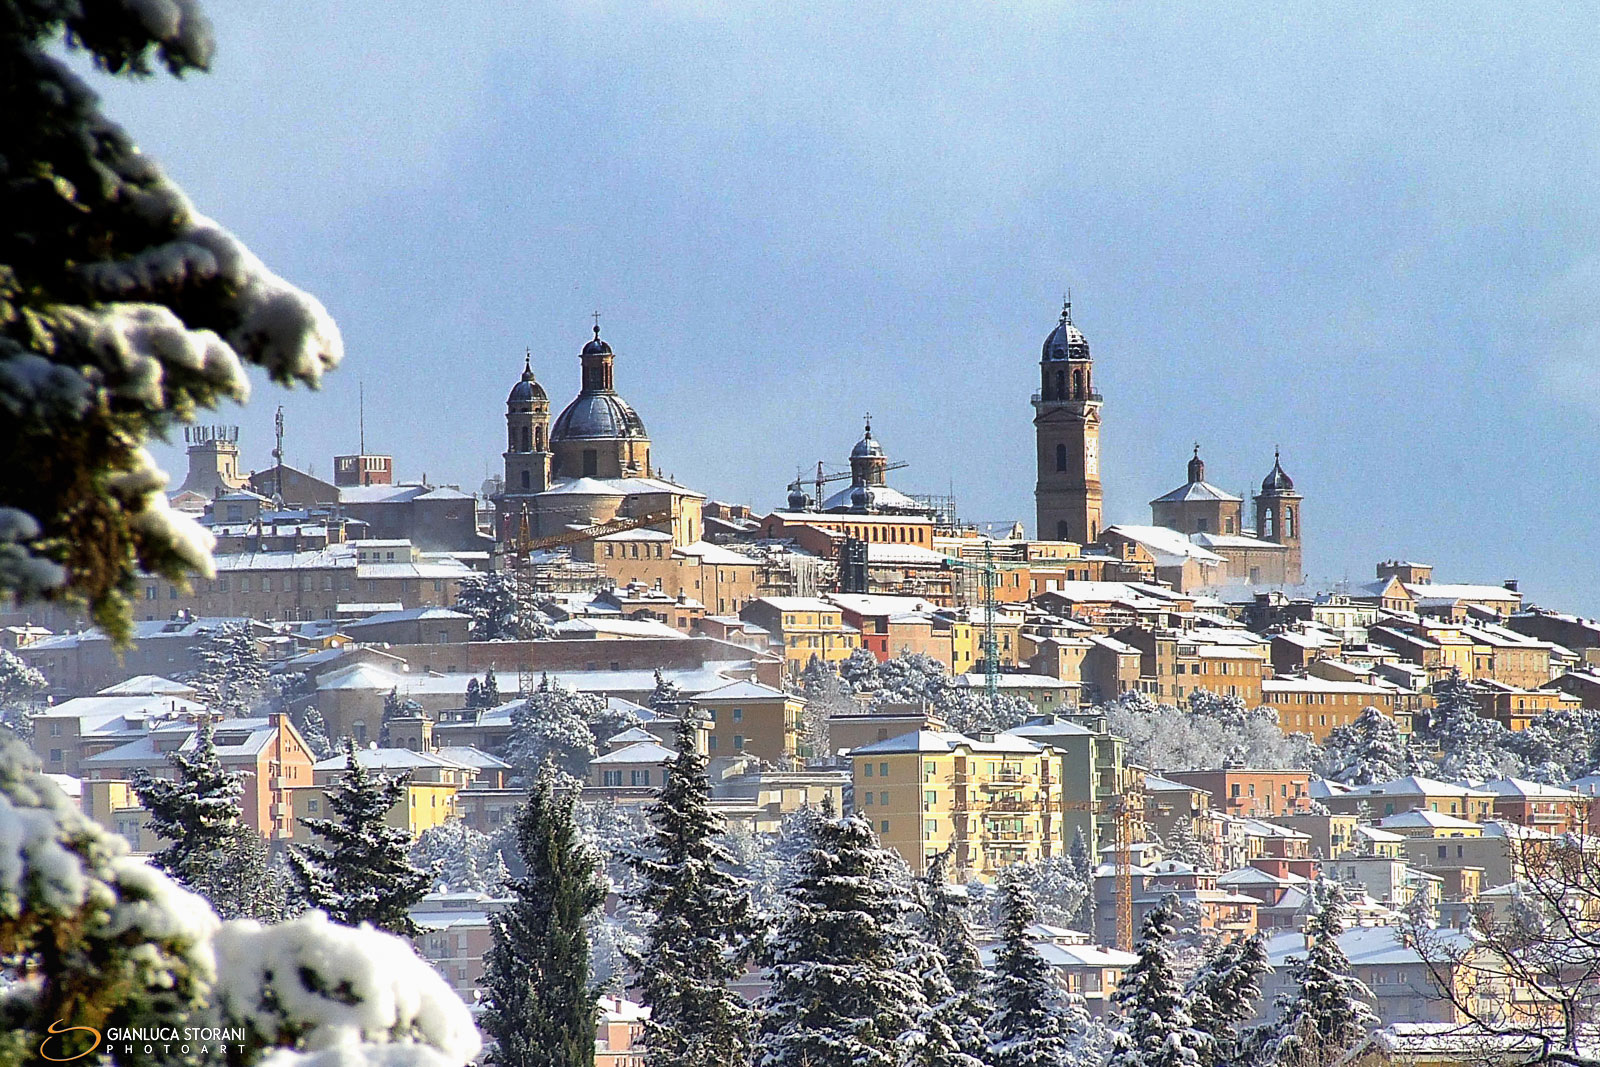 Macerata sotto la neve - Gianluca Storani Photo Art  (ID: 0-5585)